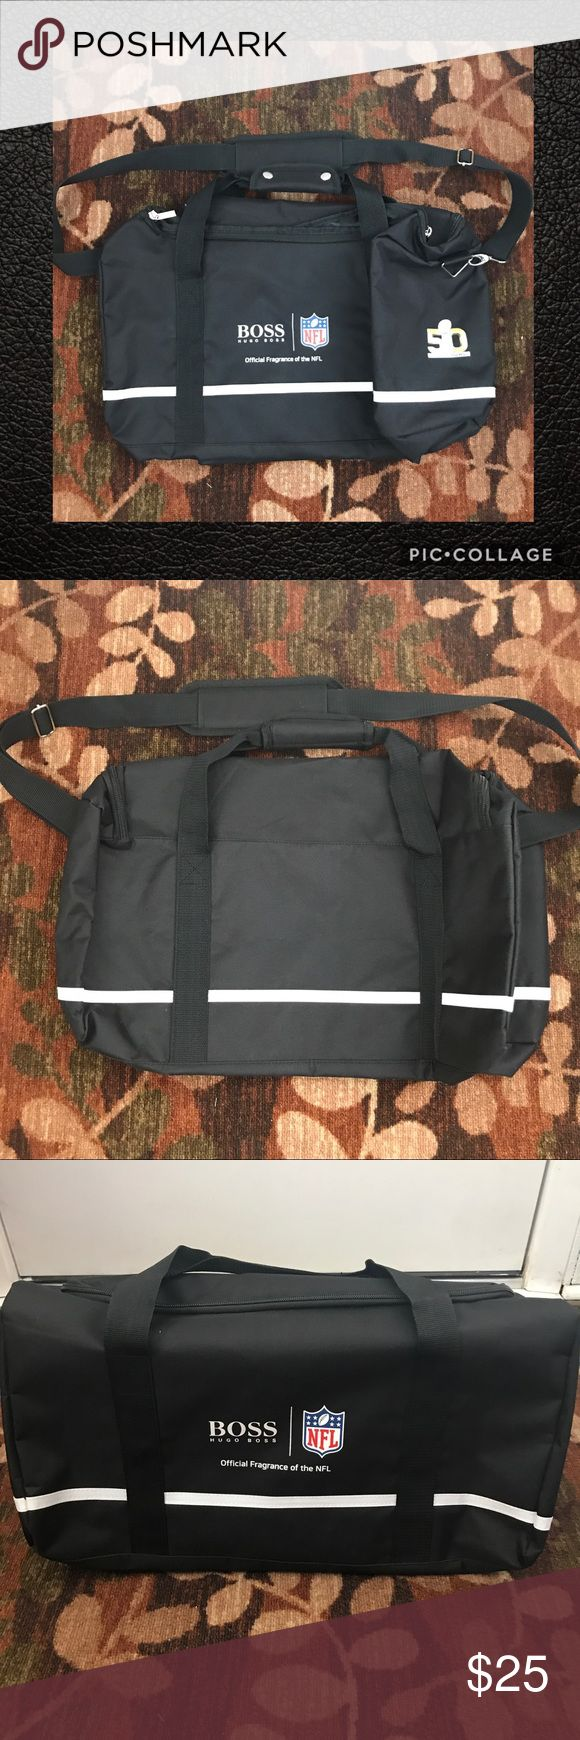 "🏈BRAND NEW MEN'S DUFFEL🏈 NWOT men's single pocket duffel bag! Dimensions when expanded are 9.5""x9.5""x20"". Has a removable adjustable padded shoulder strap. Tote handles have a snap wrap around pad for more comfortable carrying. This would be great for the gym or as a carry on travel bag! Never used, I have too many bags and I'm trying to downsize!   ❌No trades ✅REASONABLE offers through offer button only – remember Posh takes 20%! See offer chart above 🚭Smoke-free home 🚚Same or next-day…"